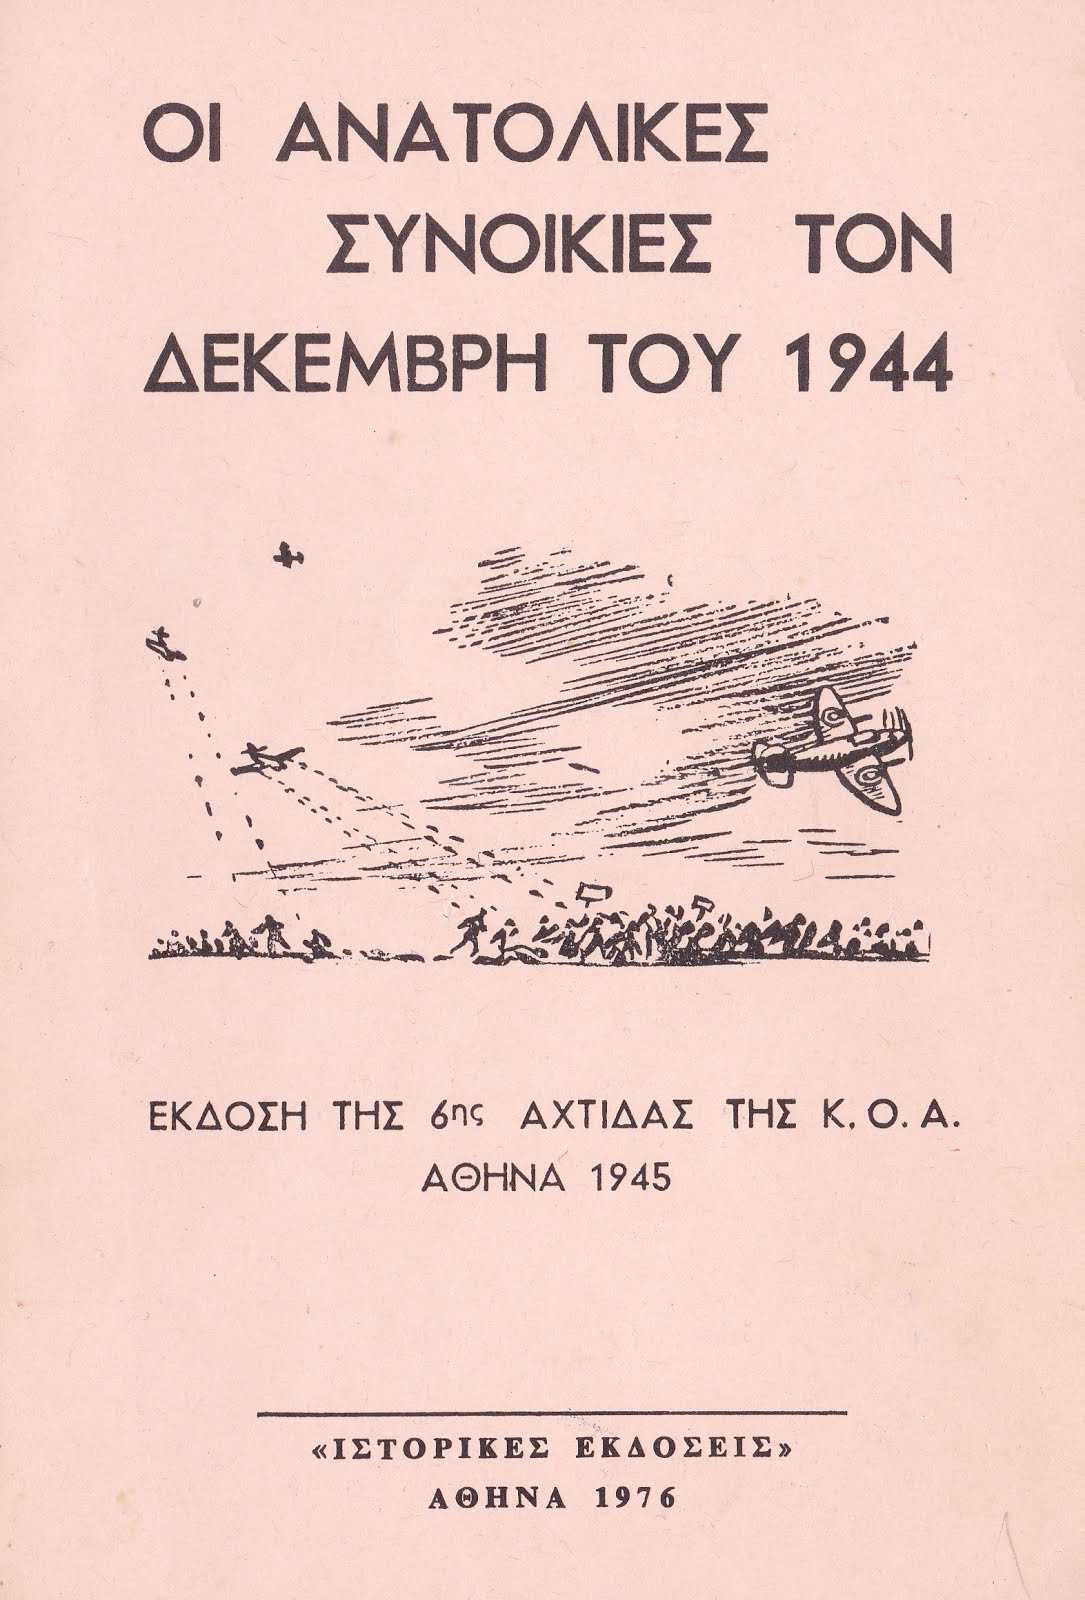 ΟΙ ΑΝΑΤΟΛΙΚΕΣ ΣΥΝΟΙΚΙΕΣ ΤΟΝ ΔΕΚΕΜΒΡΗ ΤΟΥ 1944